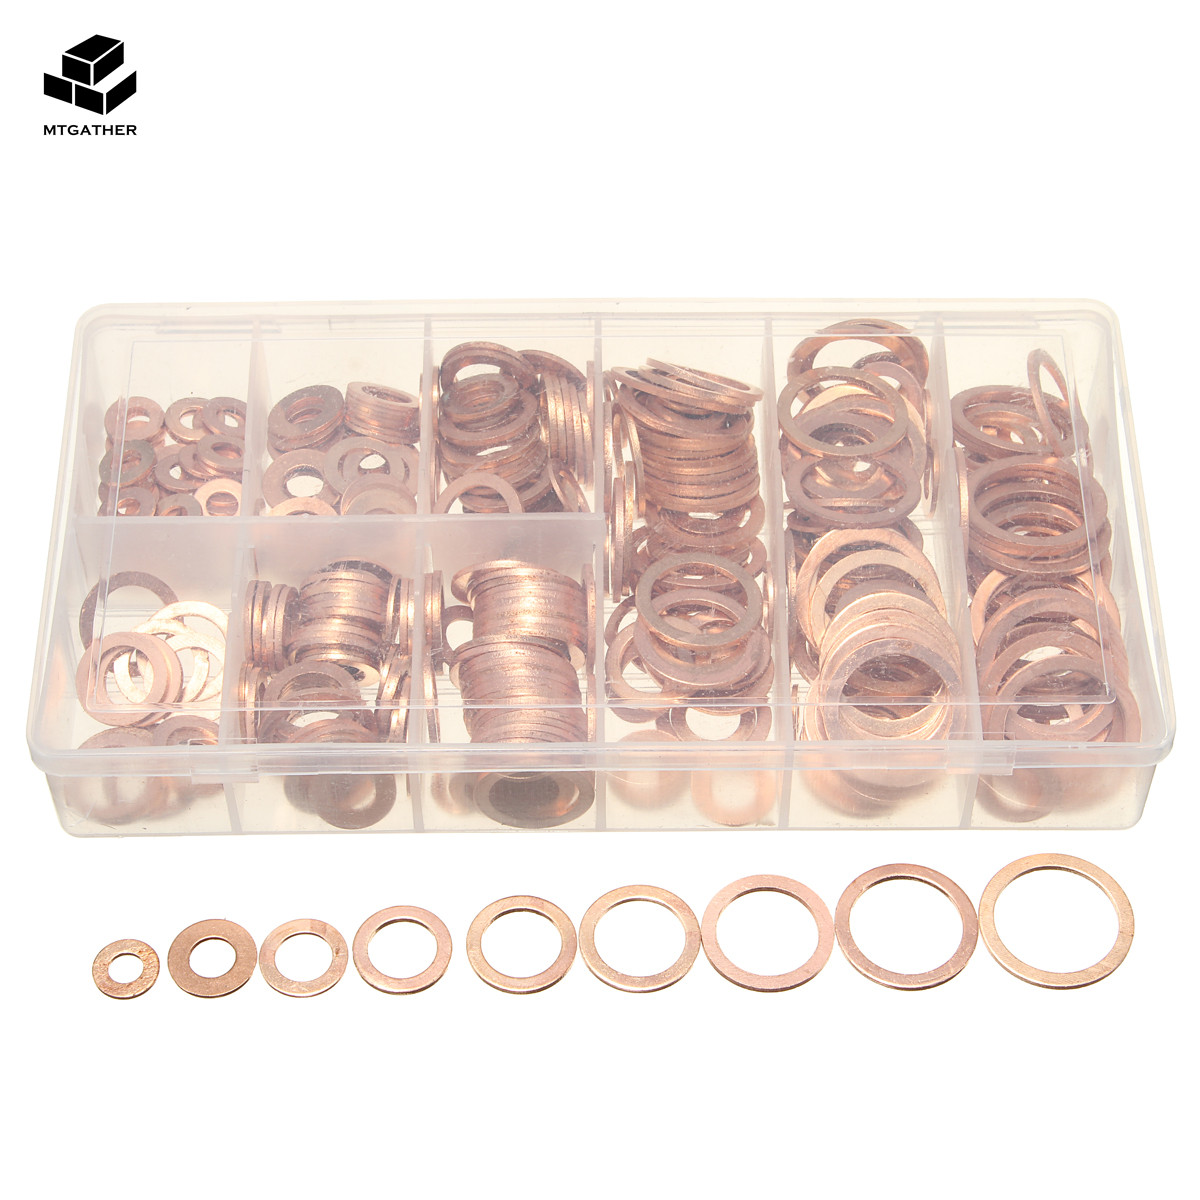 400Pcs Solid Copper Washers Sump Plug Assorted Washer Set Crush Washers Seal Flat Ring Kit Sump Plug Gask With Plastic Box 9Size 100 20pcs 10 14 1mm copper sealing washer solid gasket sump plug oil for boat crush washer flat seal ring tool parts accessories